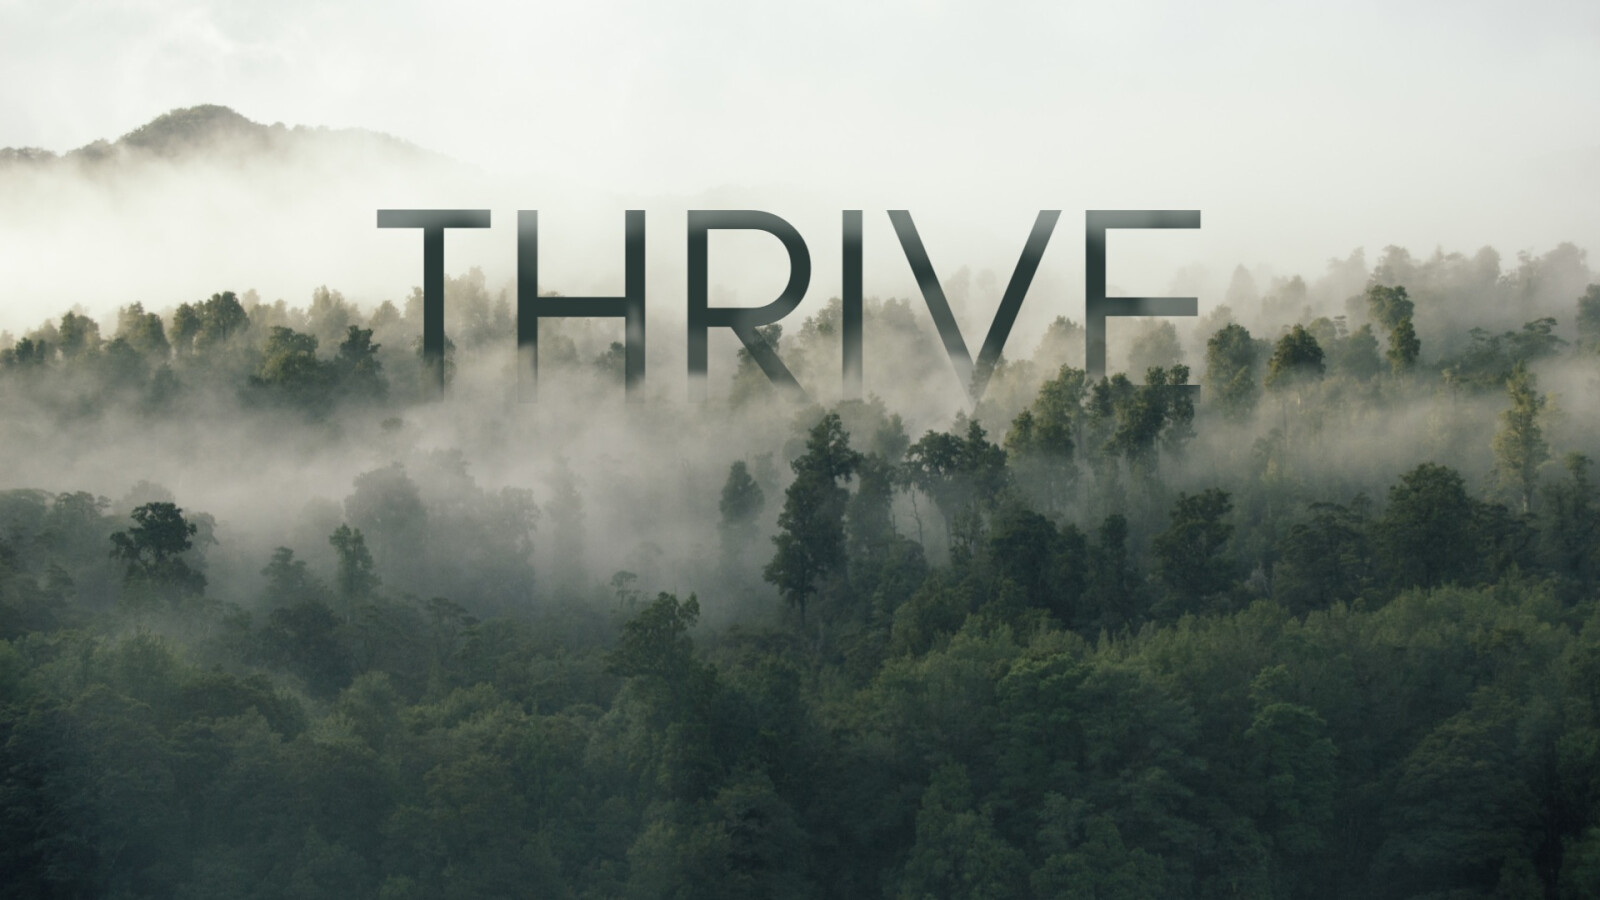 Thrive - We Were Made for More